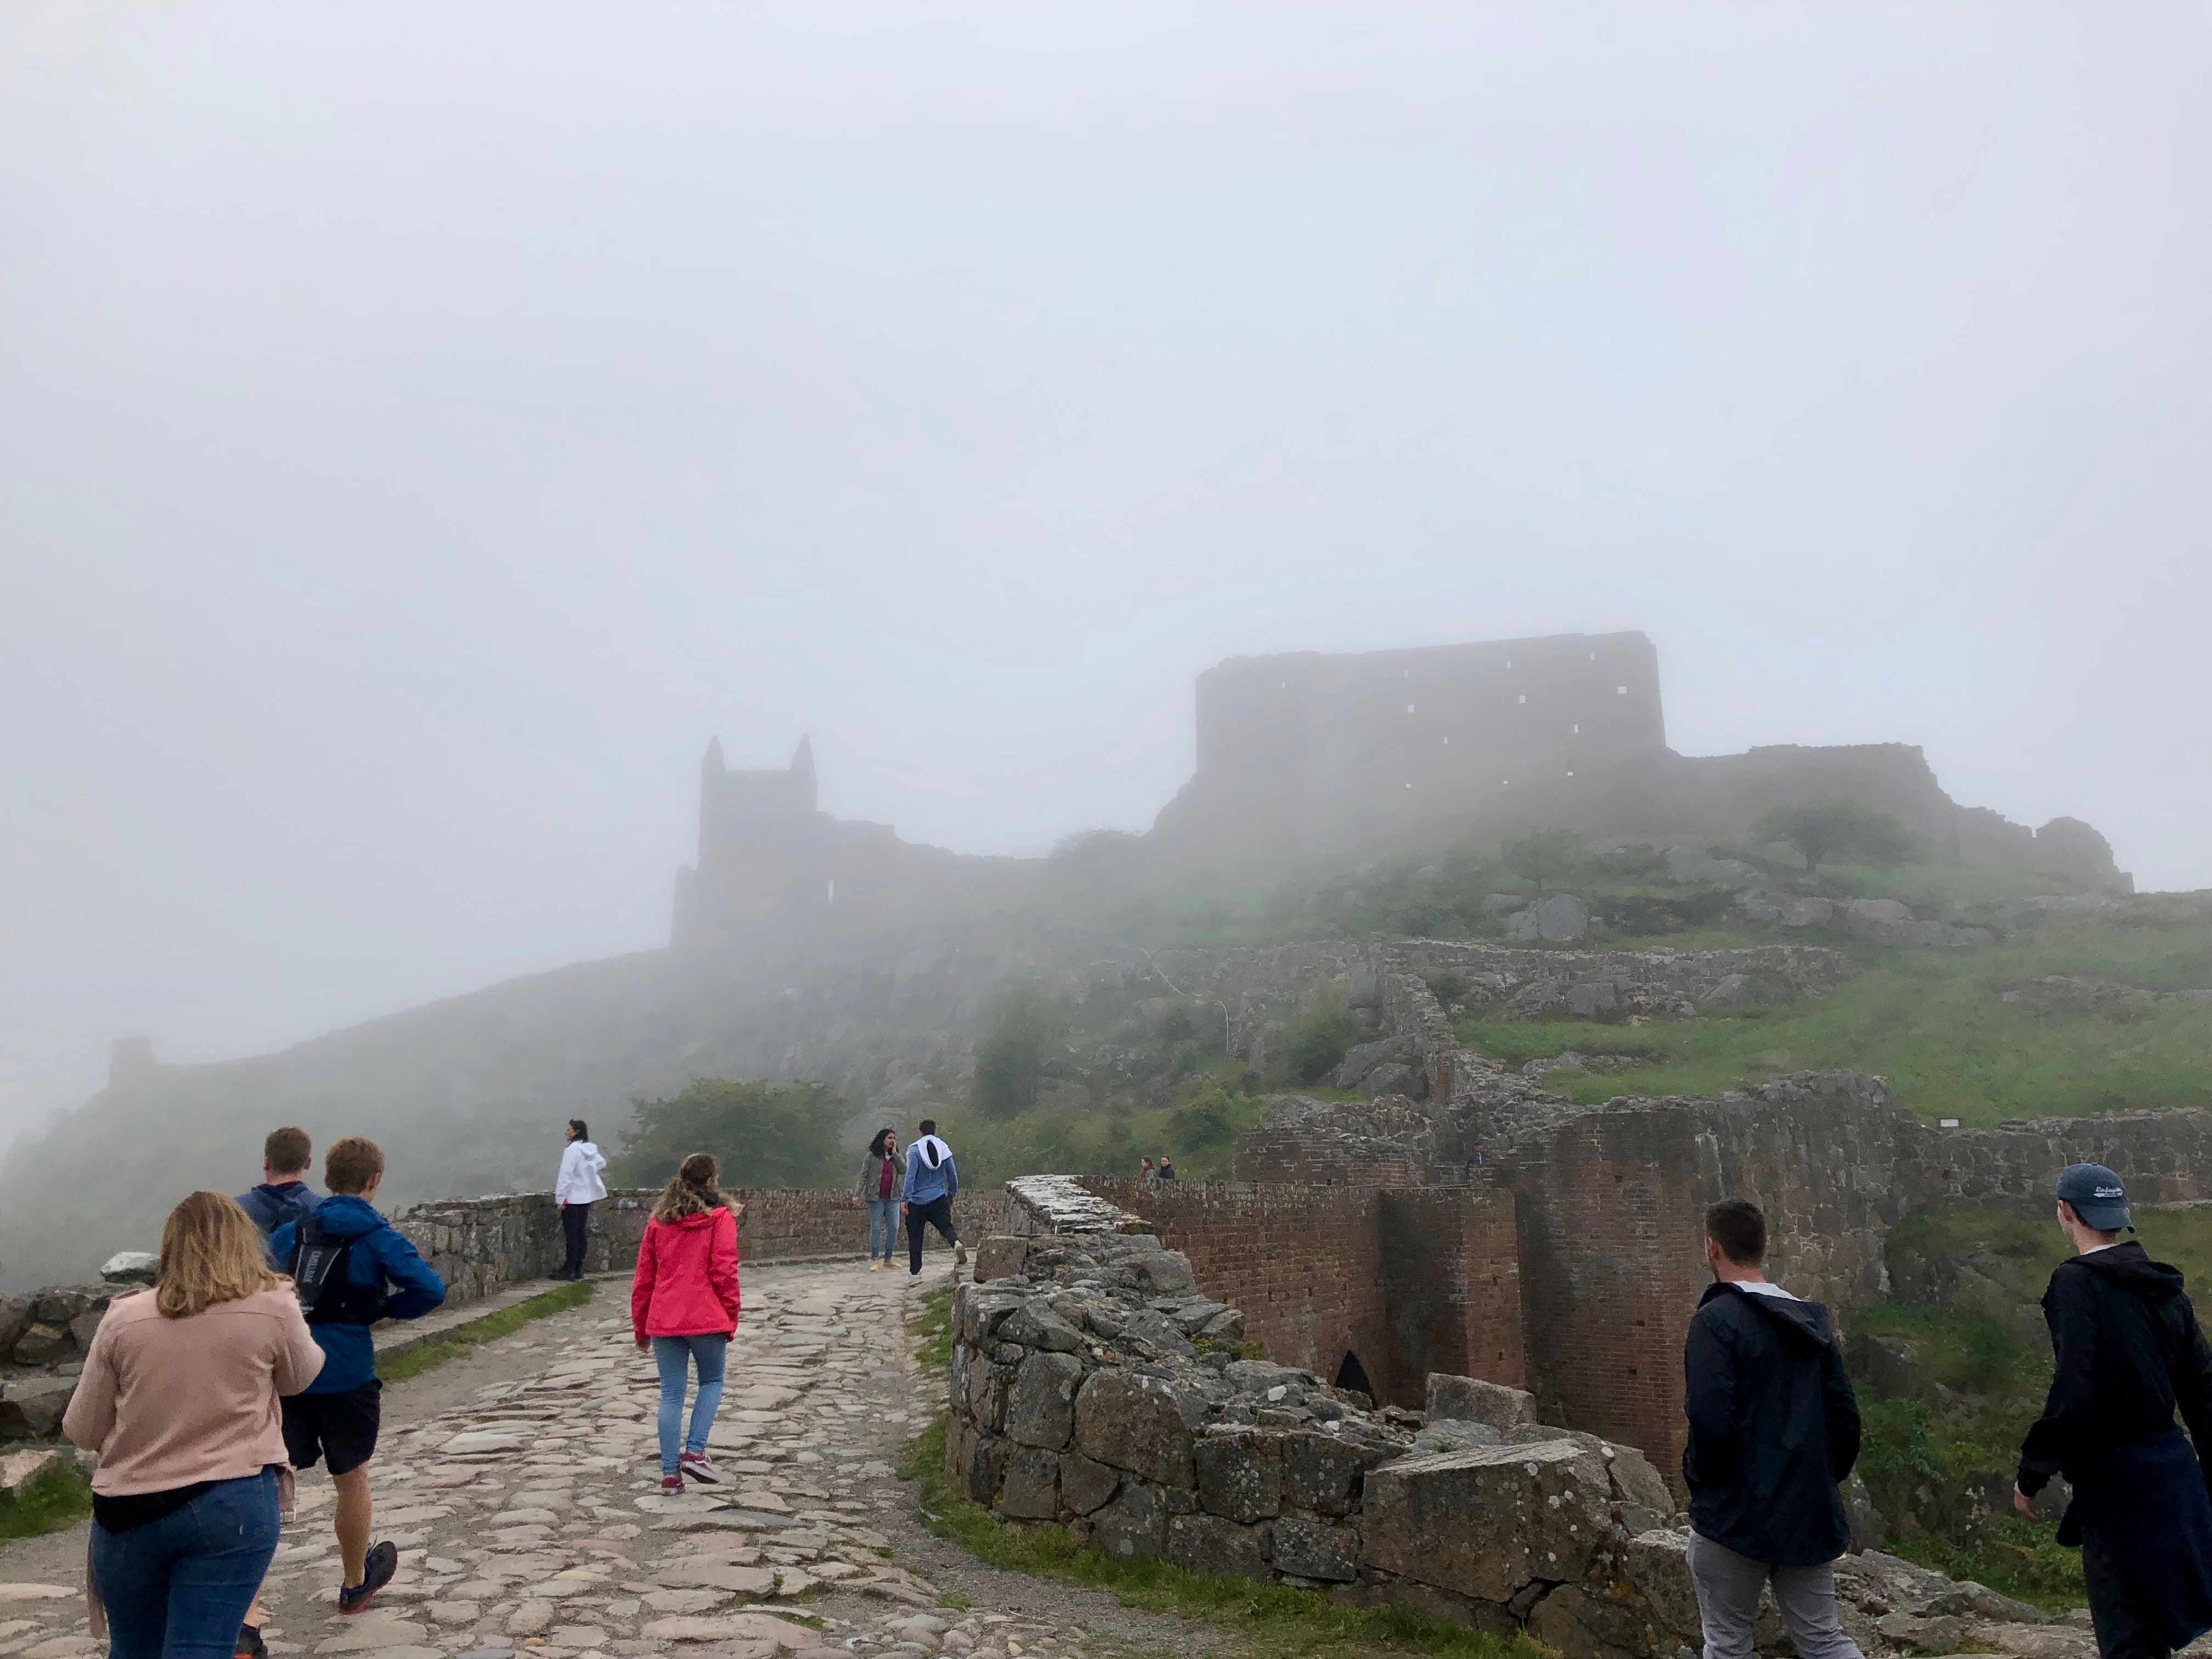 Students approaching castle ruins on a foggy day.